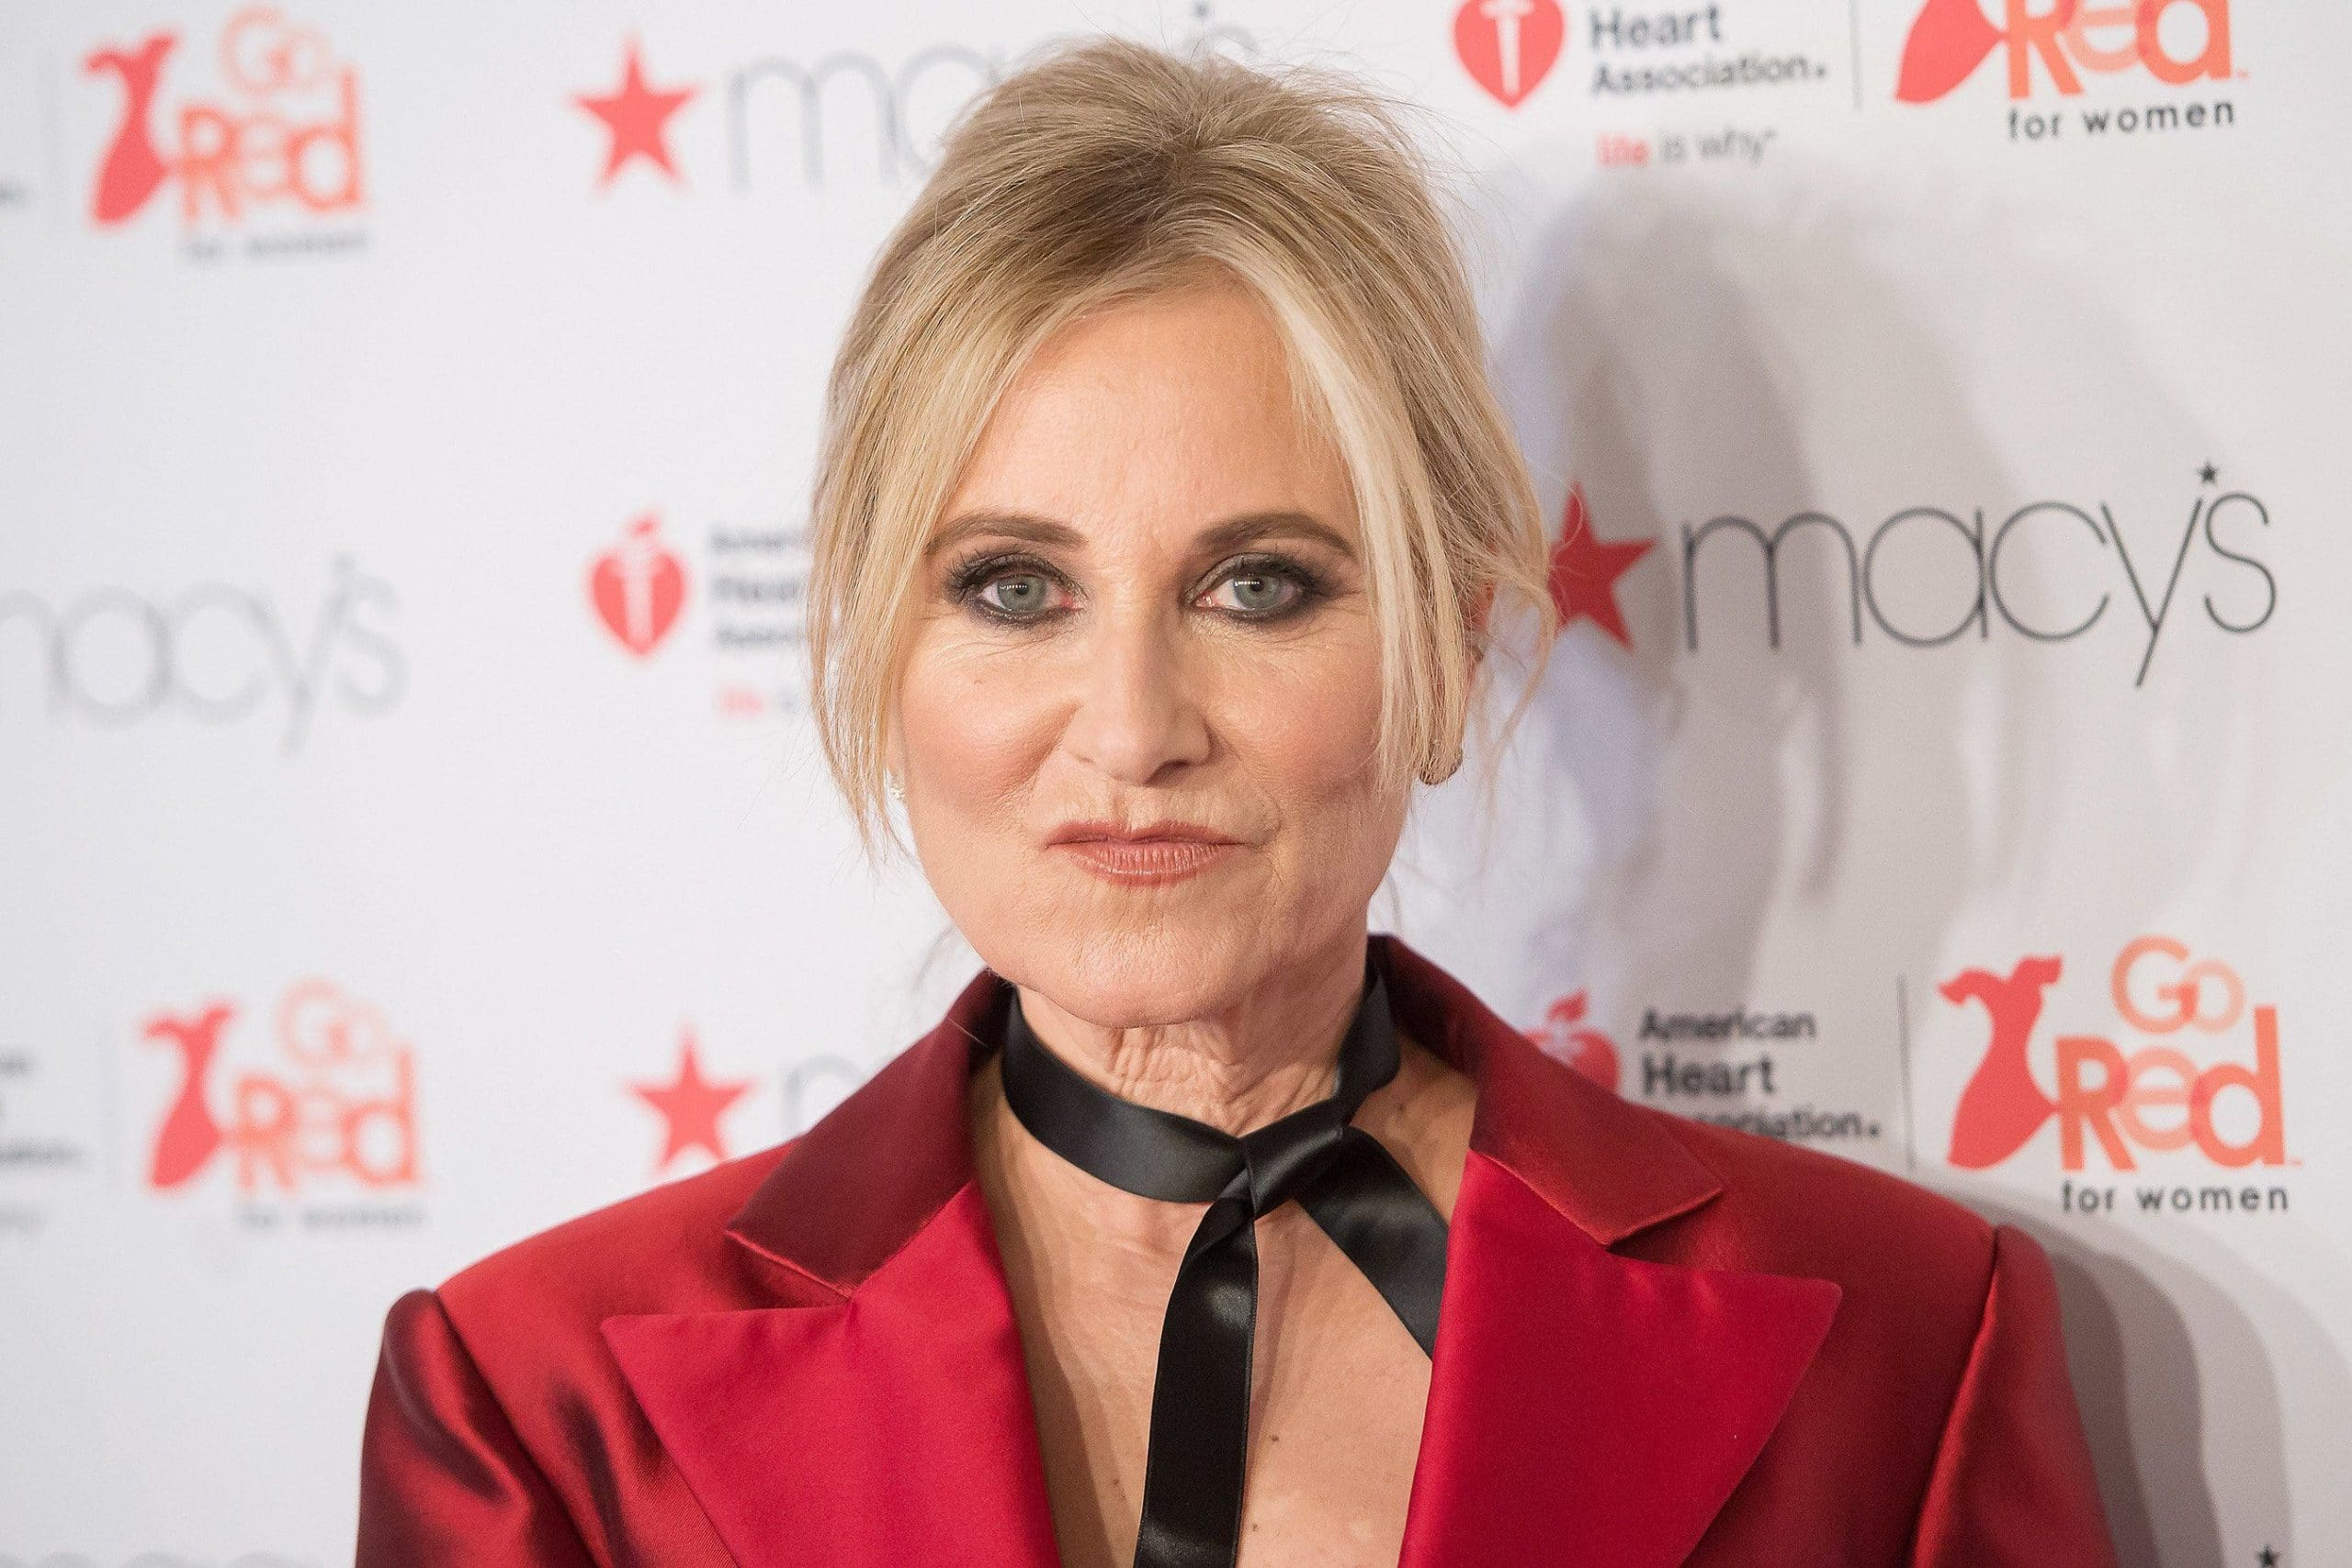 Maureen McCormick American Actress, Singer and Author